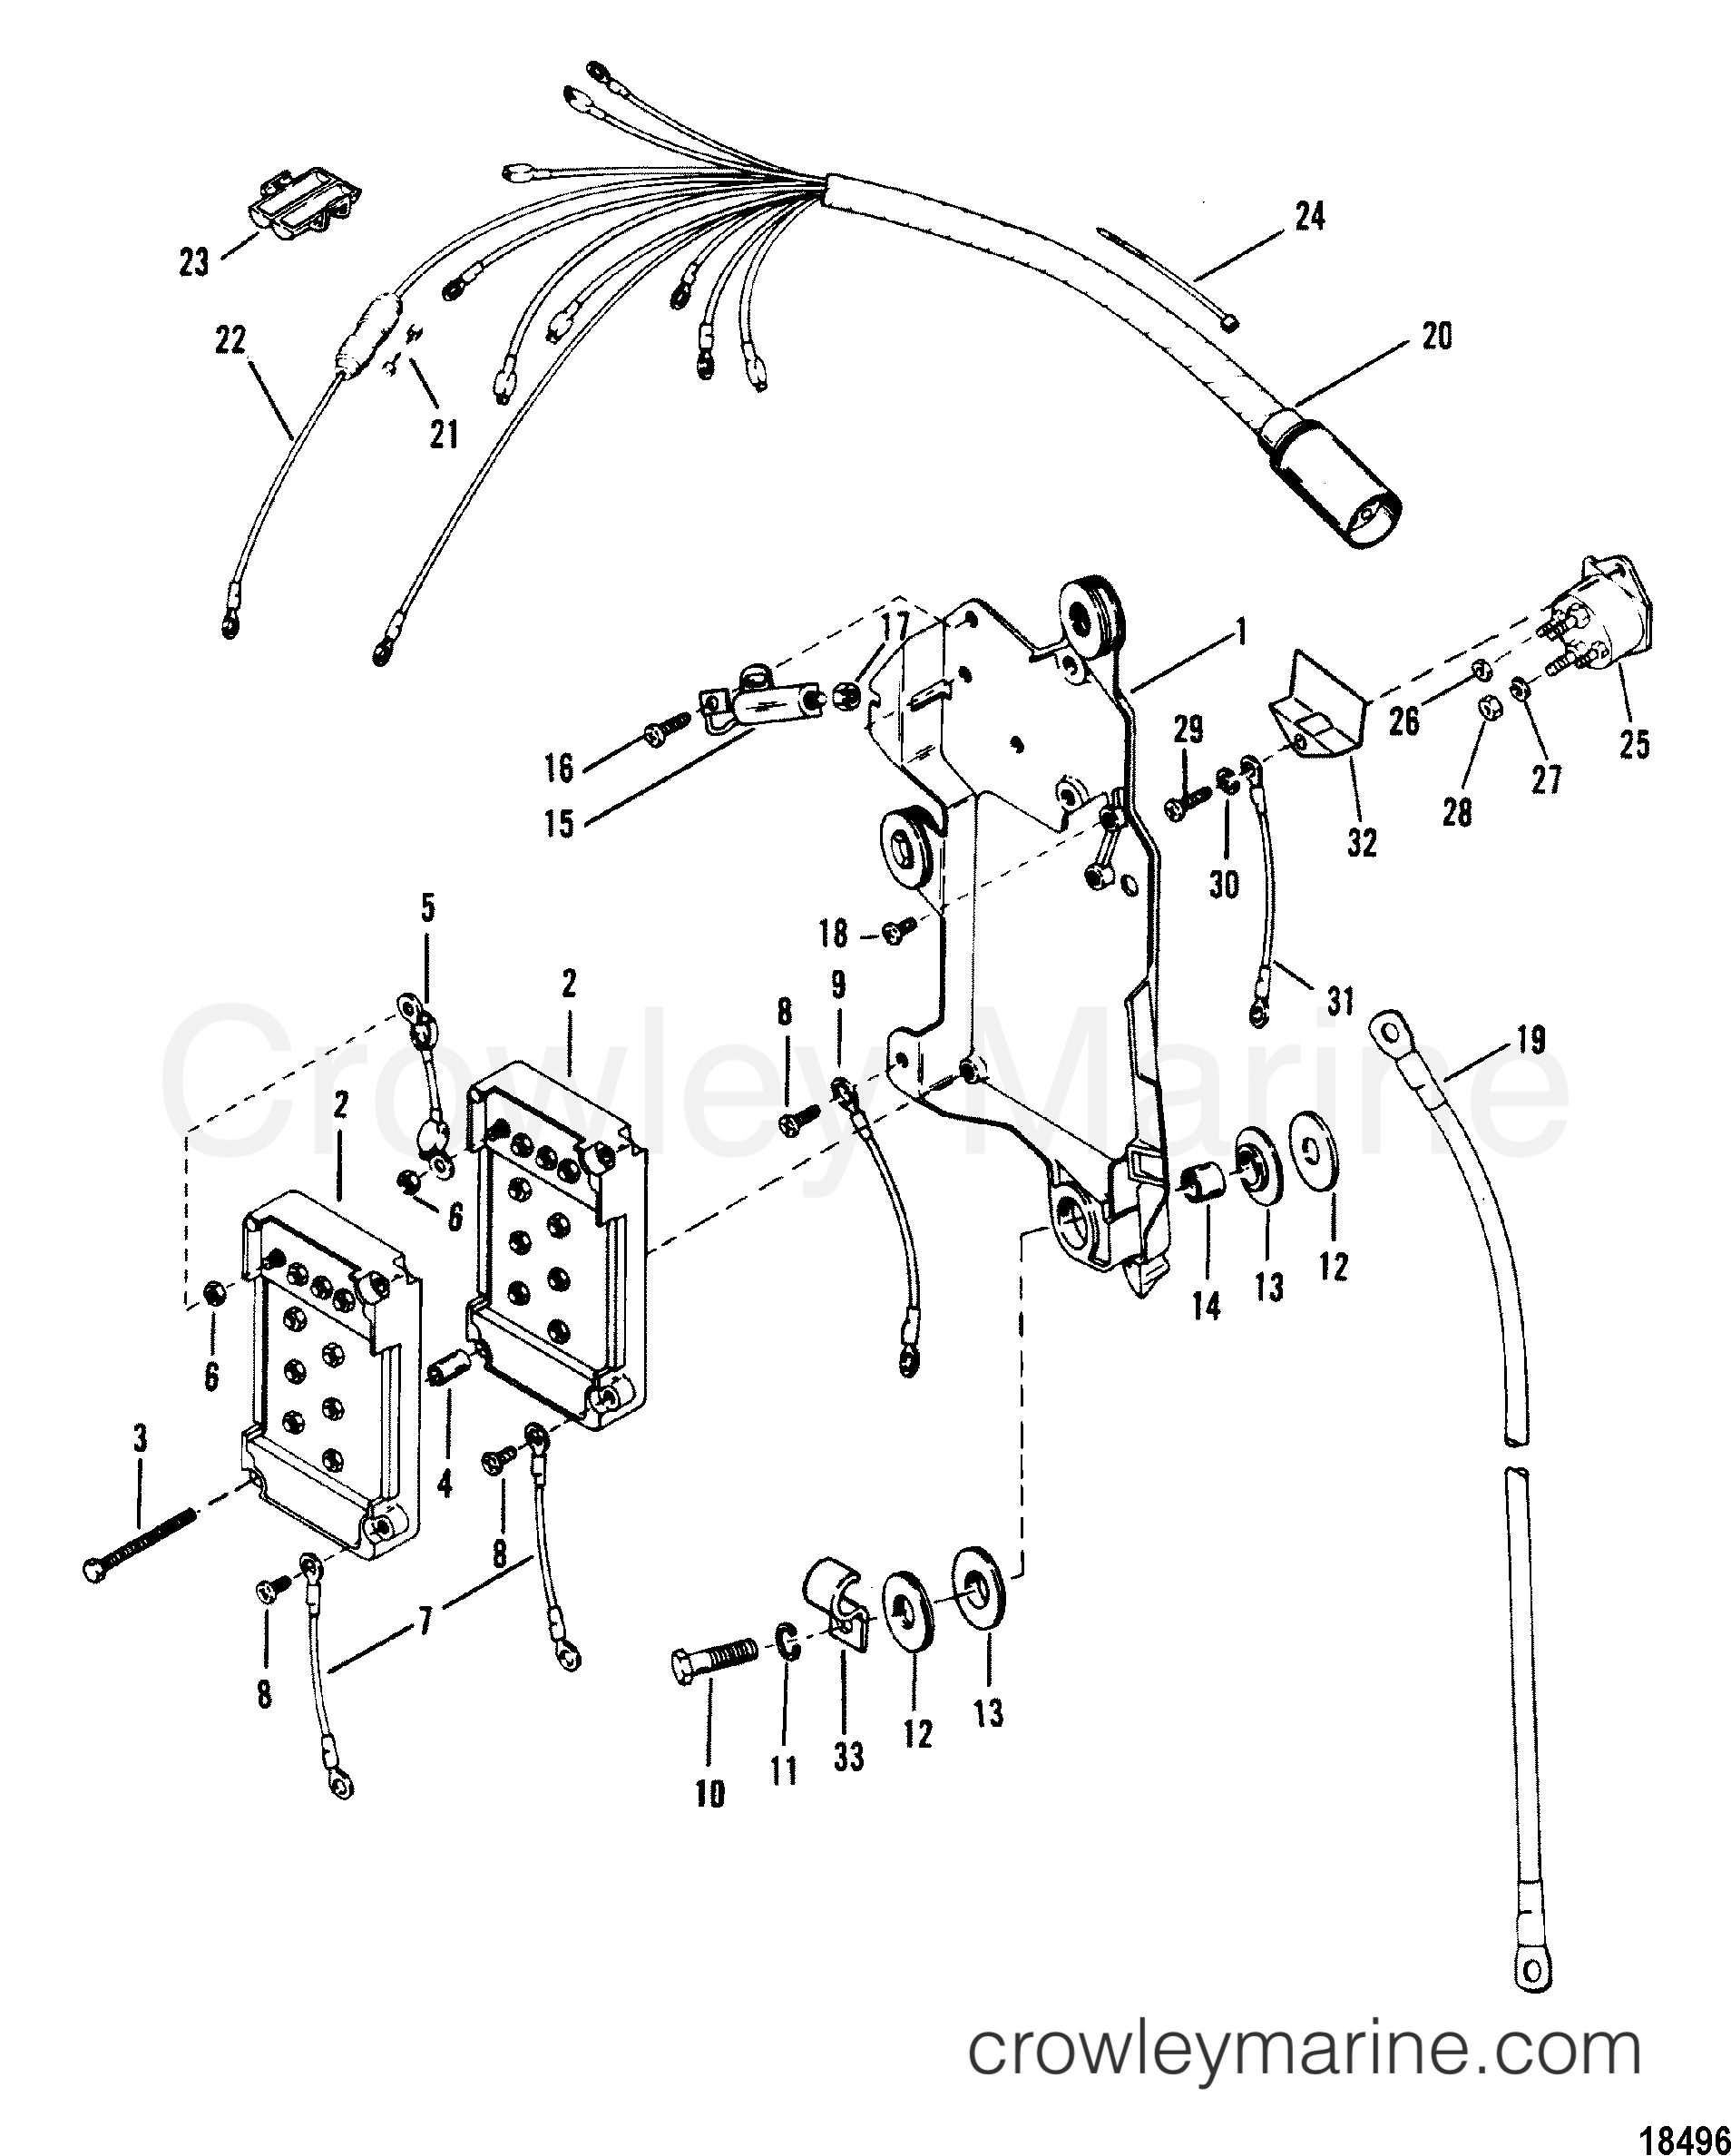 mariner outboard engine wiring diagram wiring harness starter solenoid 1989 mariner outboard 135  l  wiring harness starter solenoid 1989